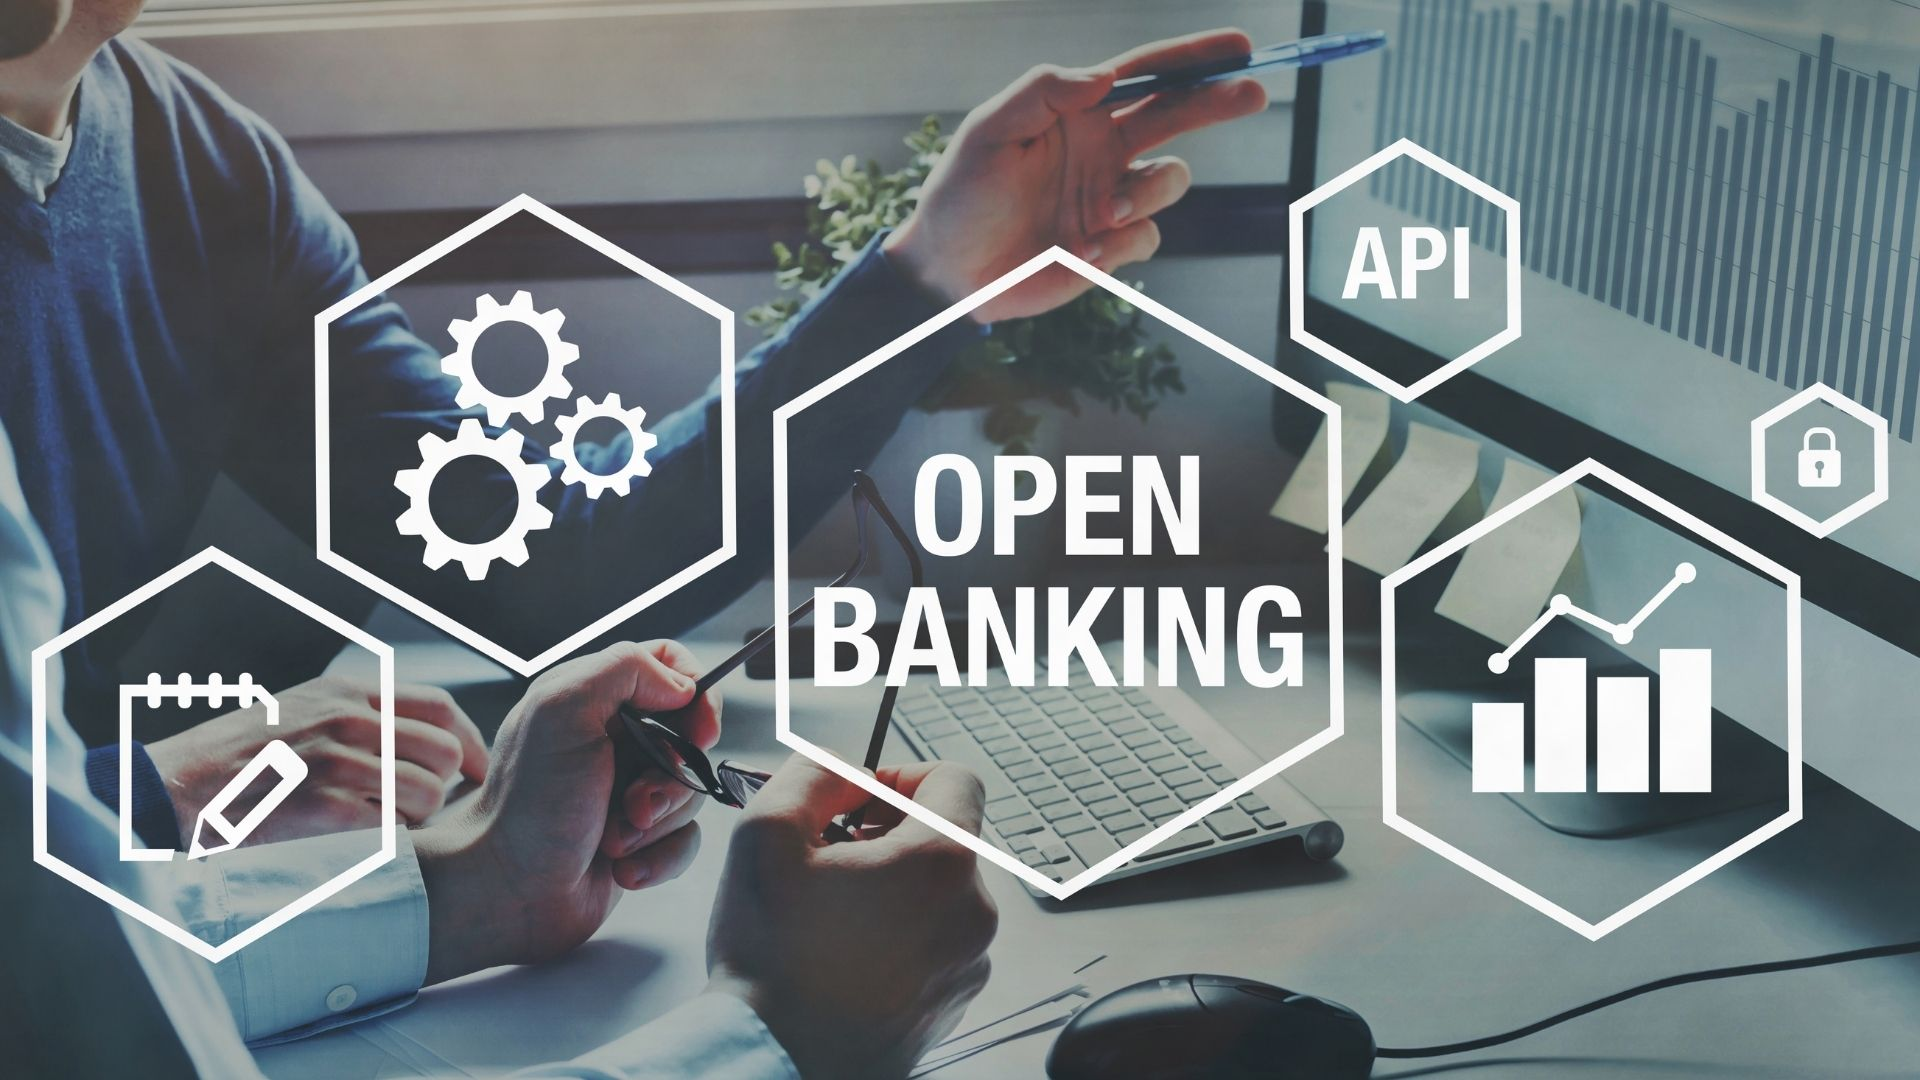 It's time for open banking to open up 37